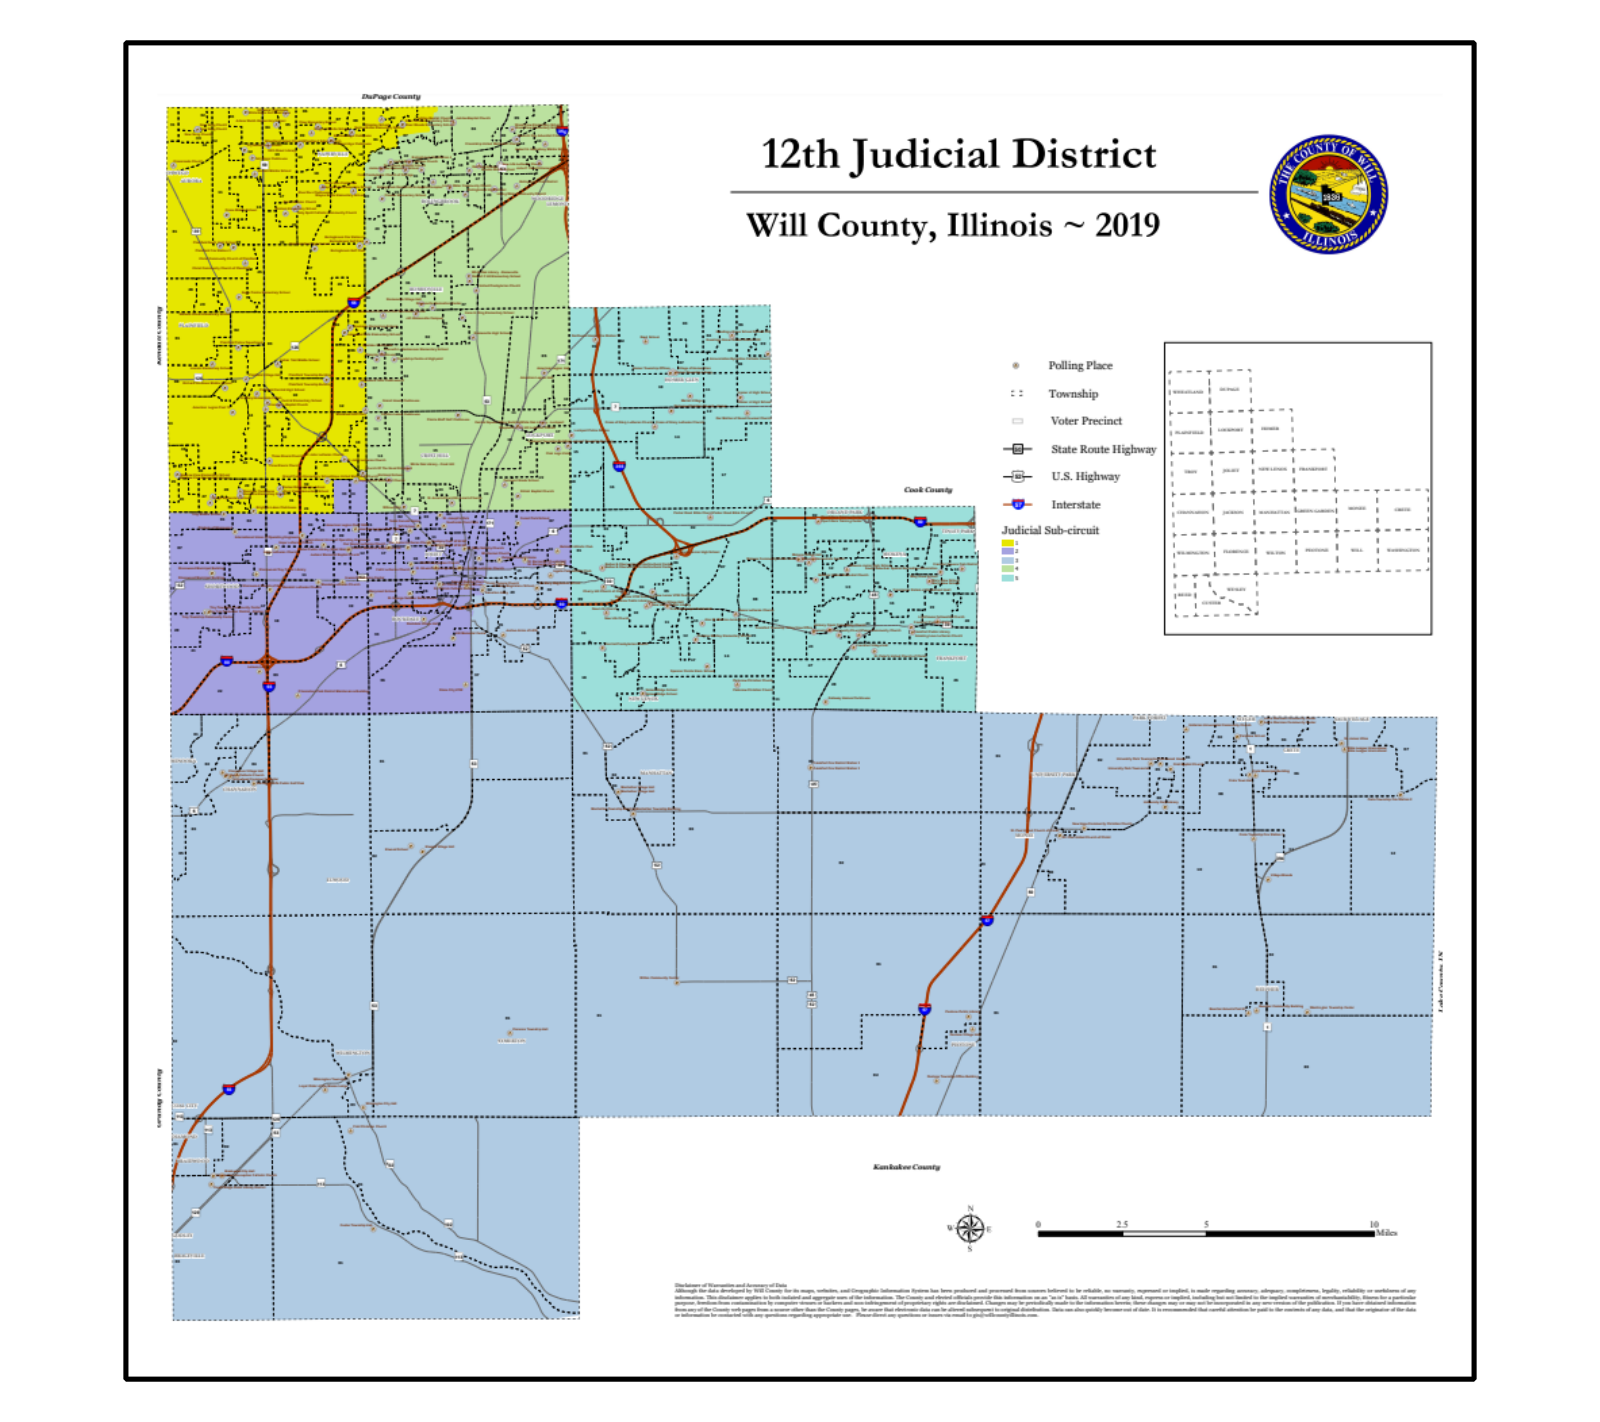 Will County 12th Judicial District map